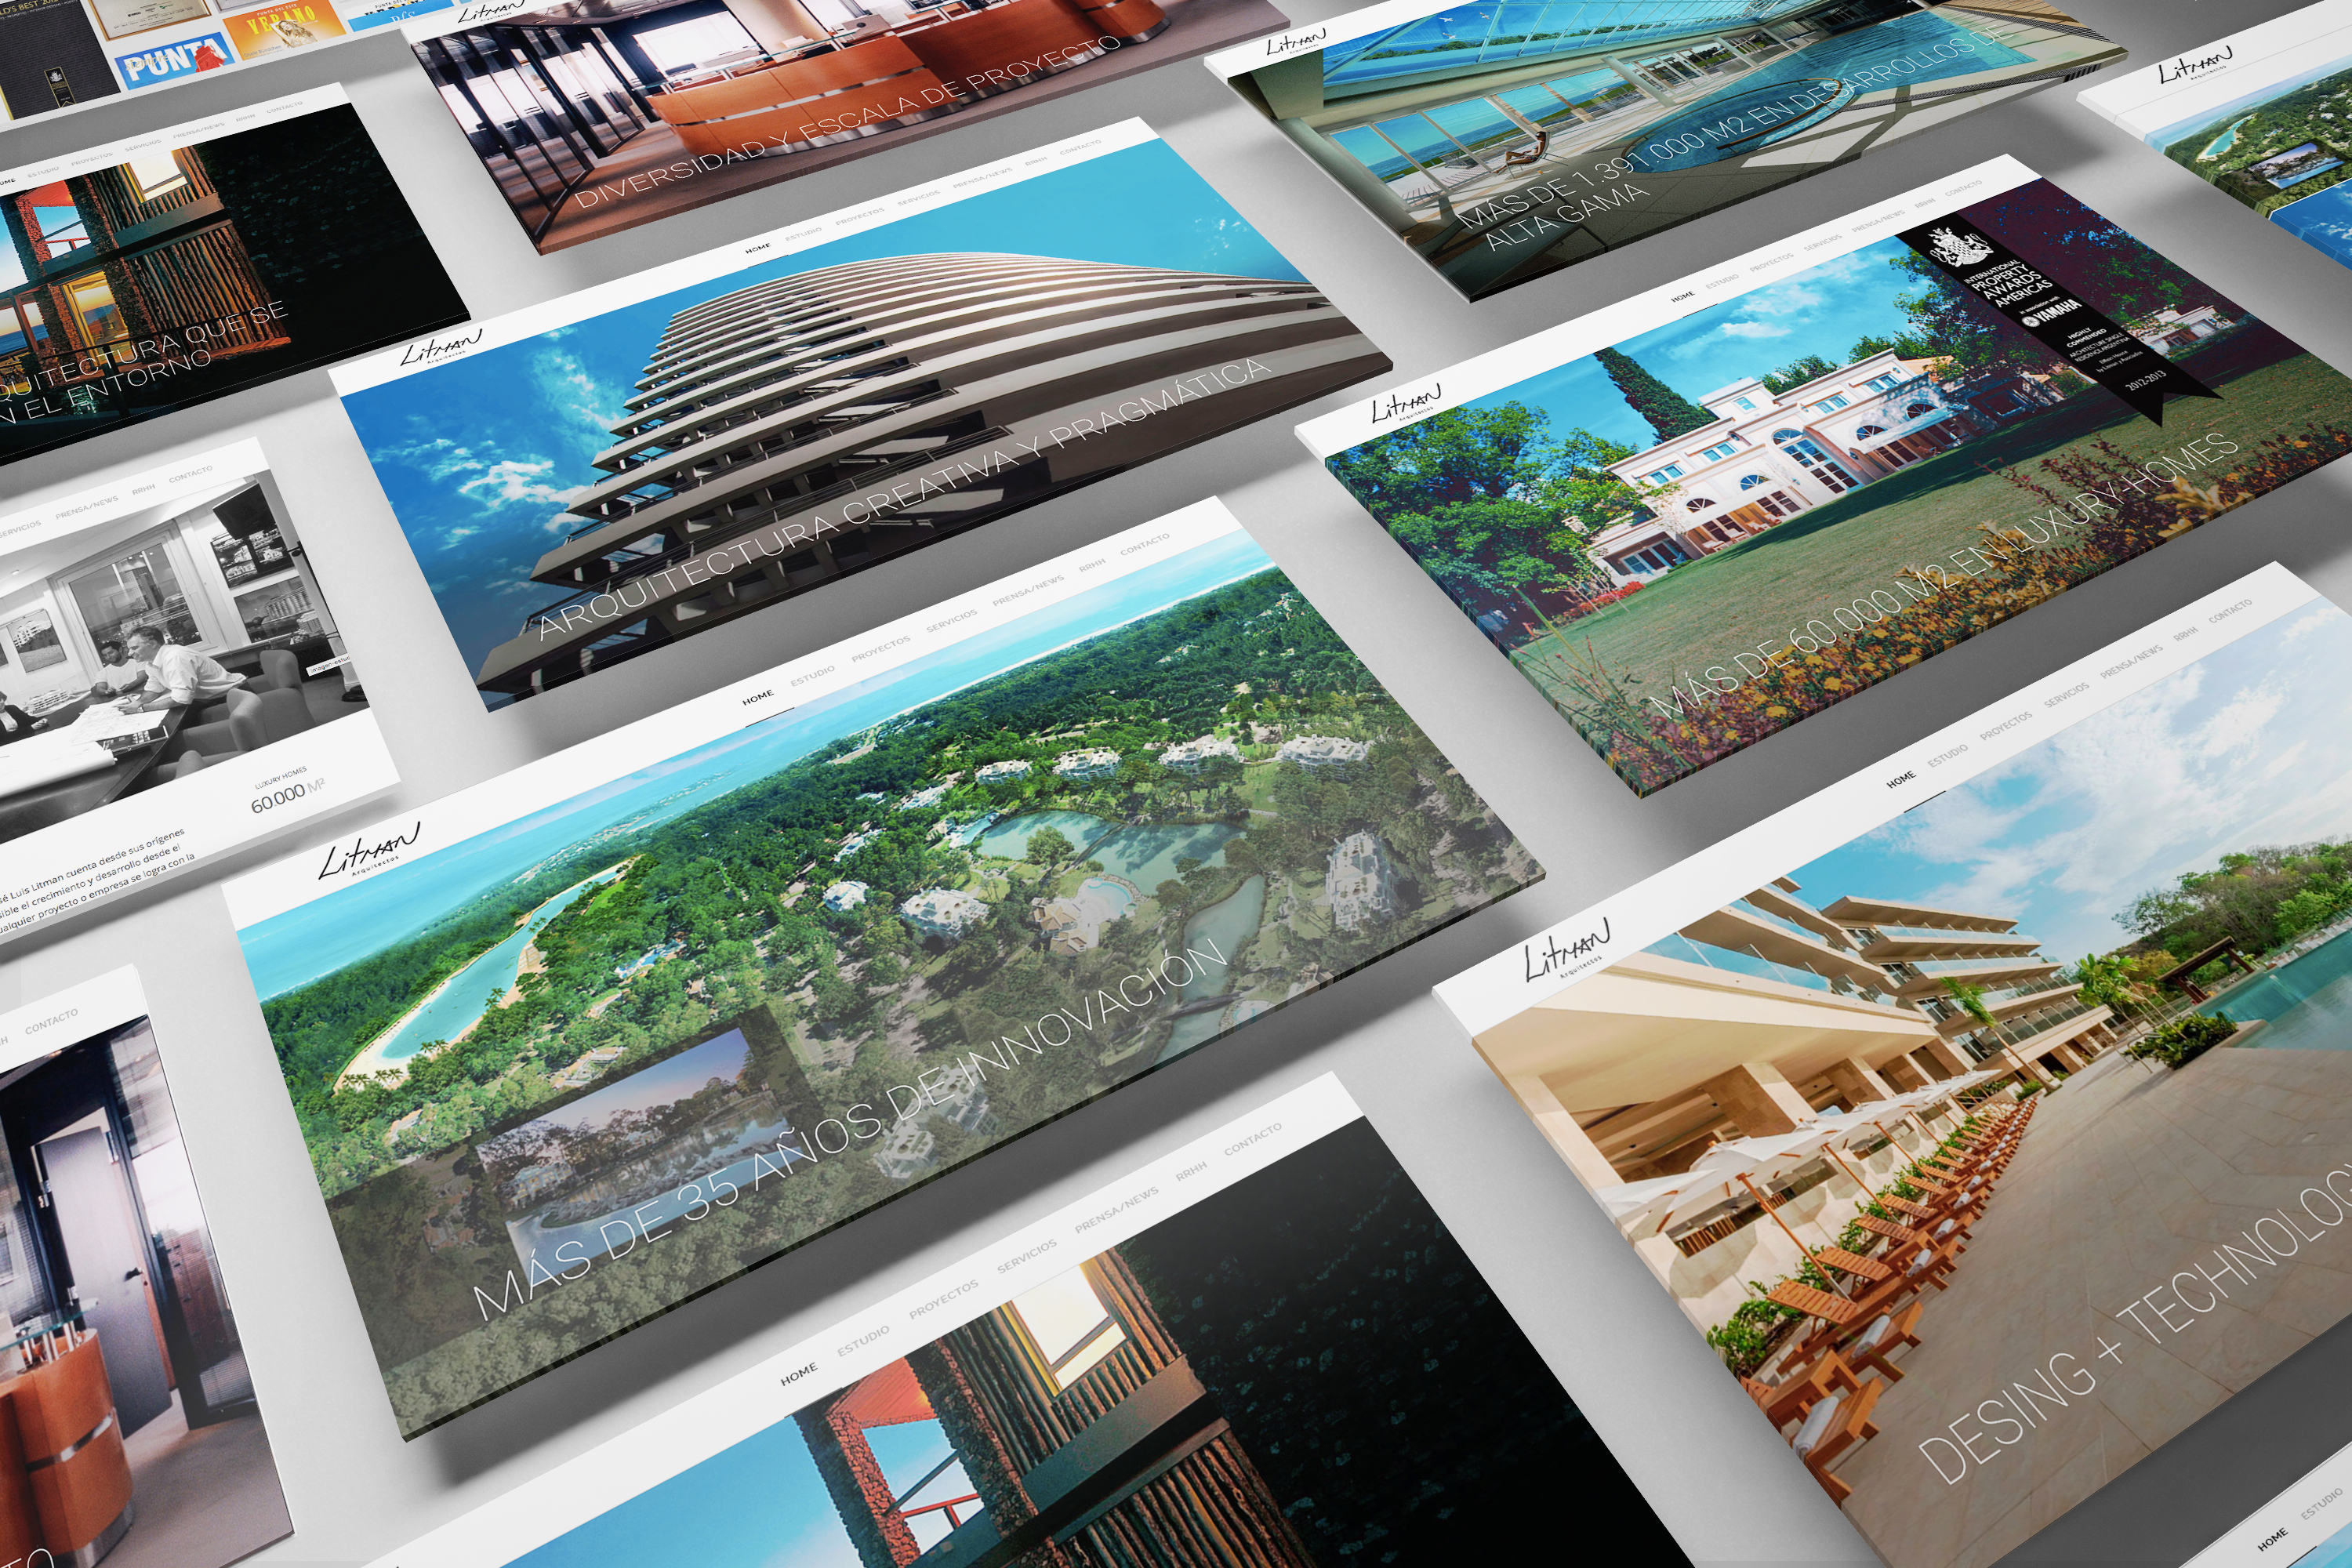 Litman arquitectos website